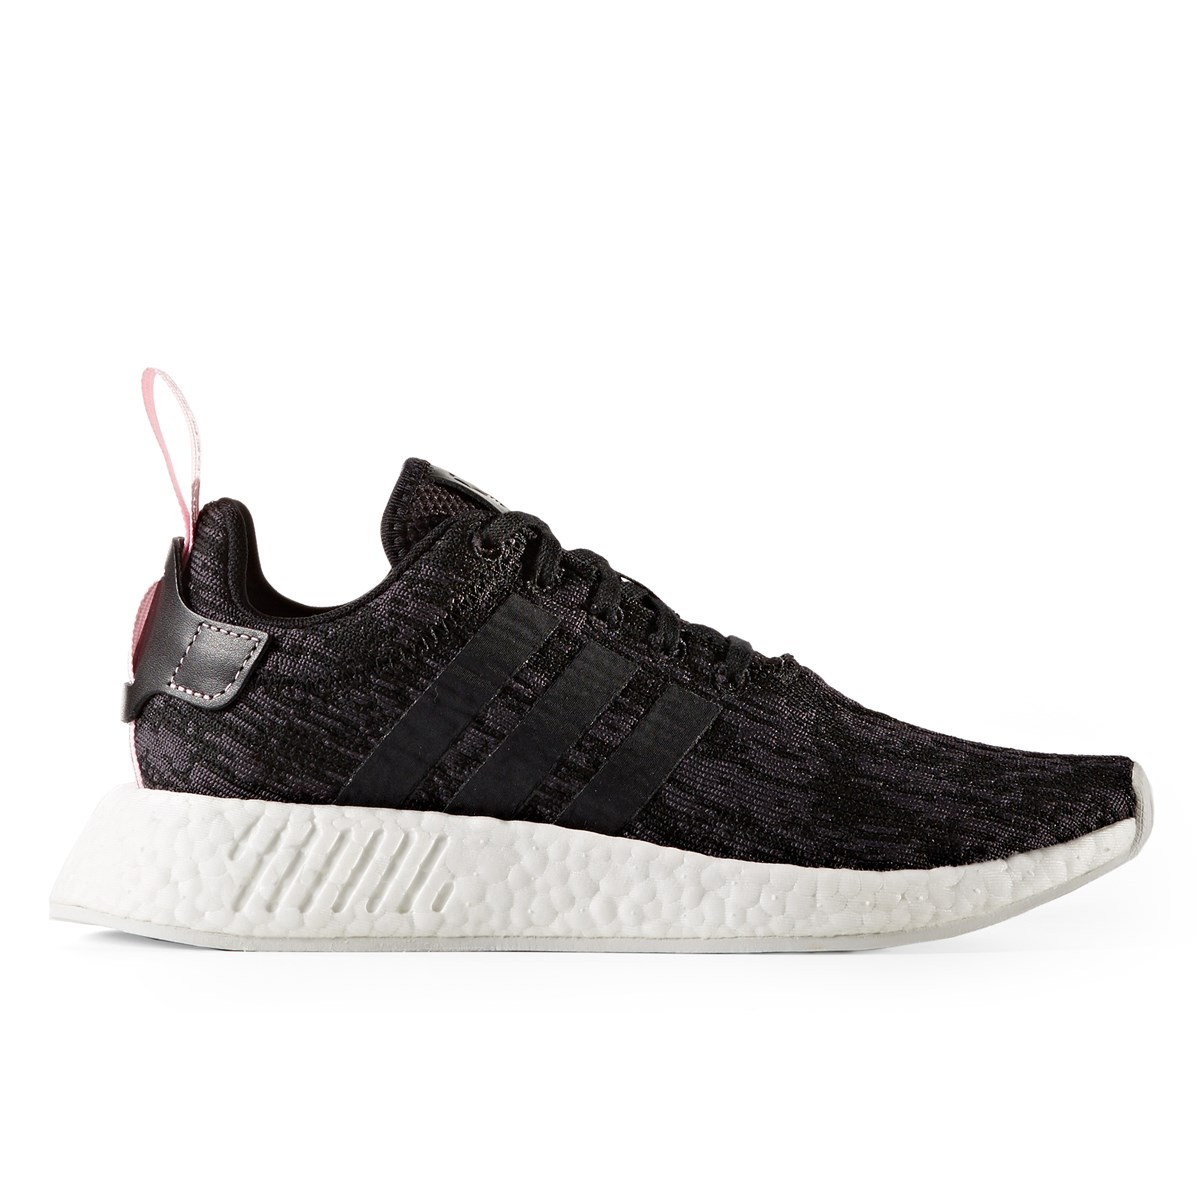 8772c24520e69 Women s NMD R2 Core Black   Wonder Pink Sneaker. Previous. default view   ALT1  ALT4